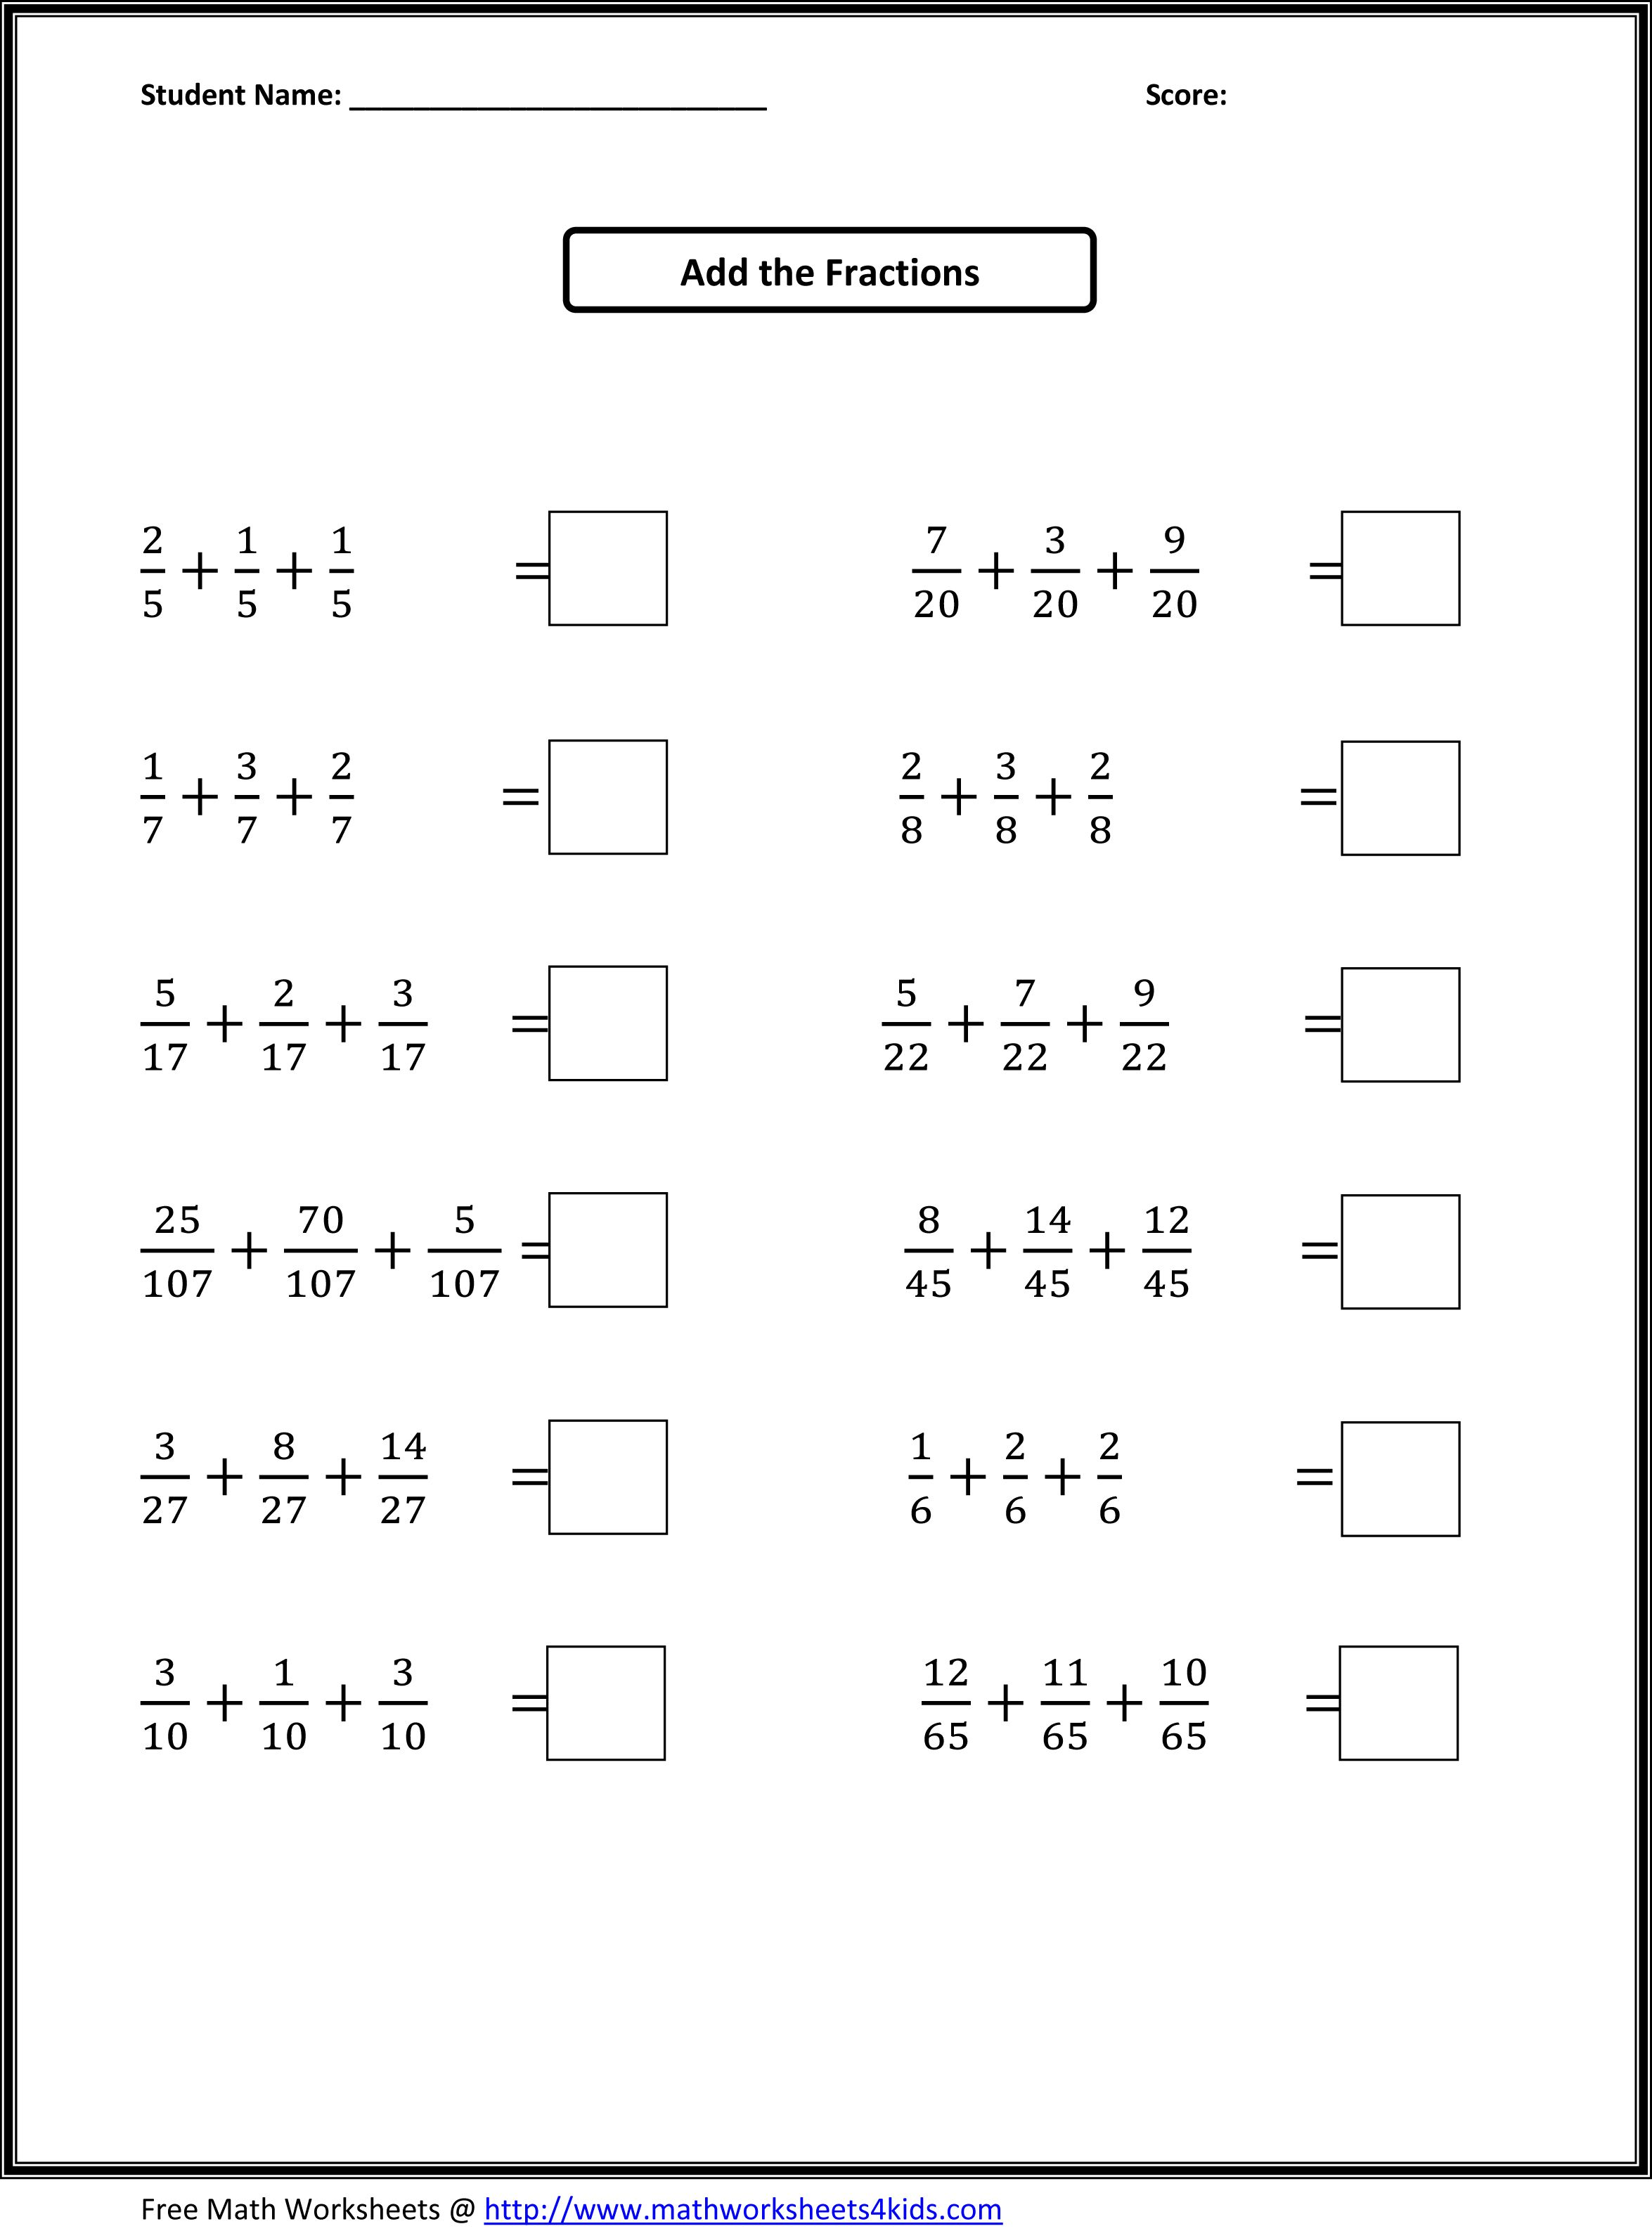 Worksheet 4th Grade Math Printable Worksheets 1000 images about math worksheets on pinterest 4th grade geometry and math